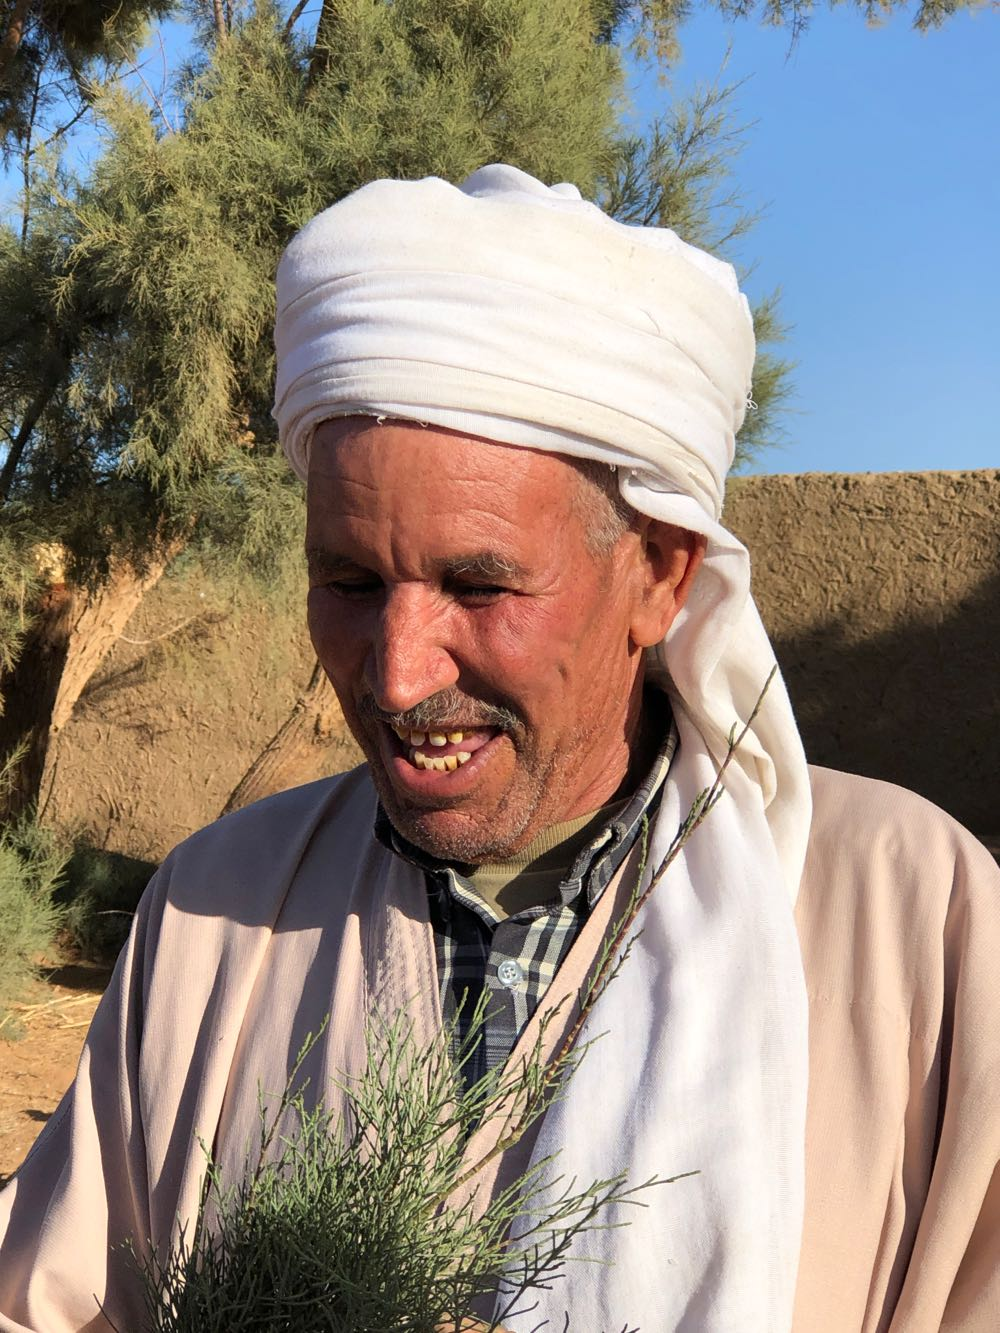 Muhammed with a Tamarisk branch